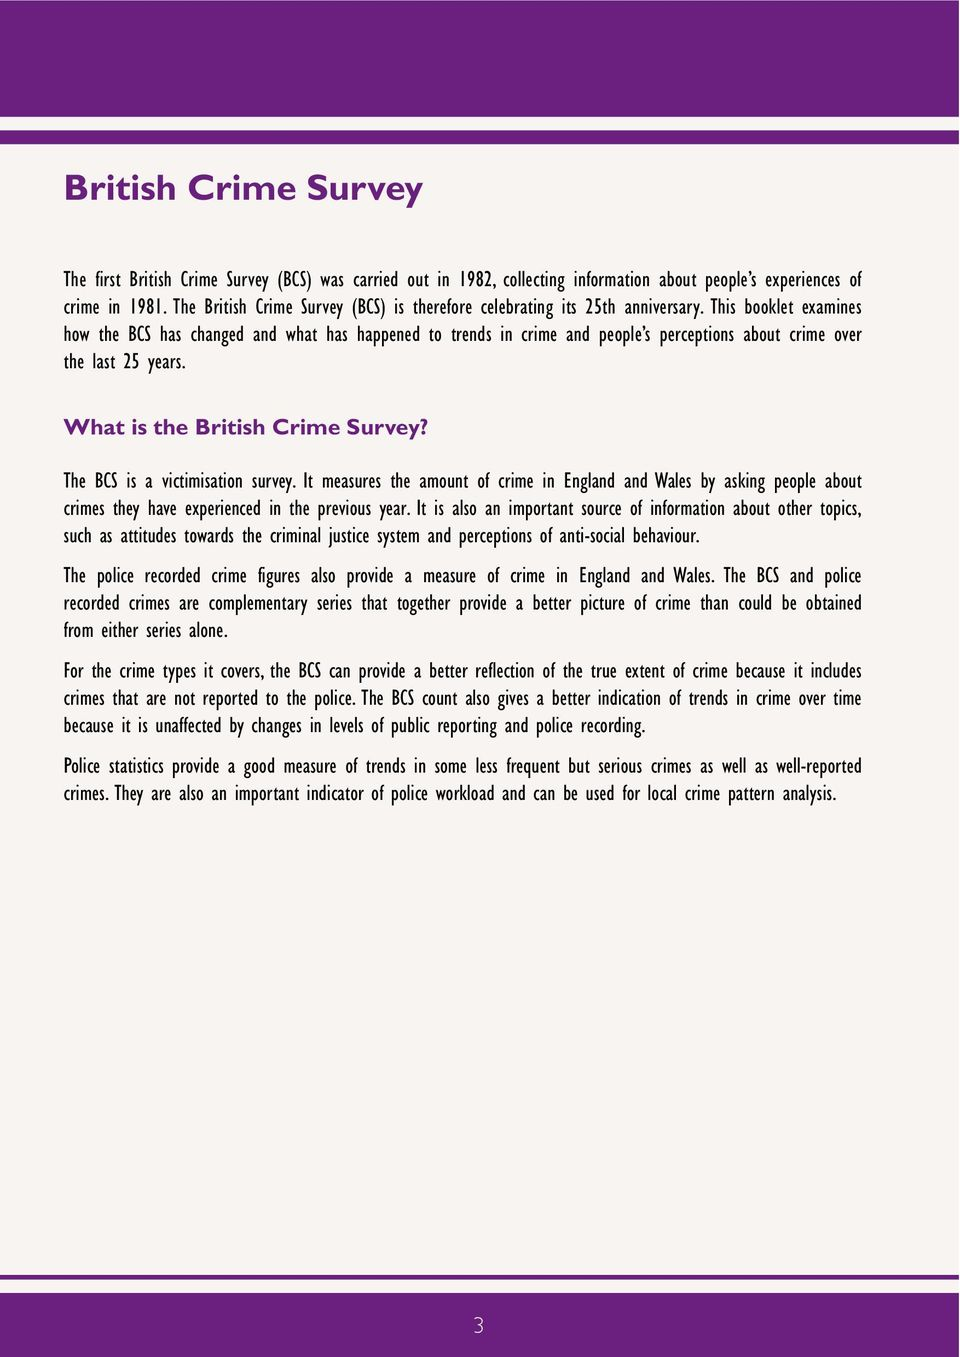 This booklet examines how the BCS has changed and what has happened to trends in crime and people s perceptions about crime over the last 25 years. What is the British Crime Survey?